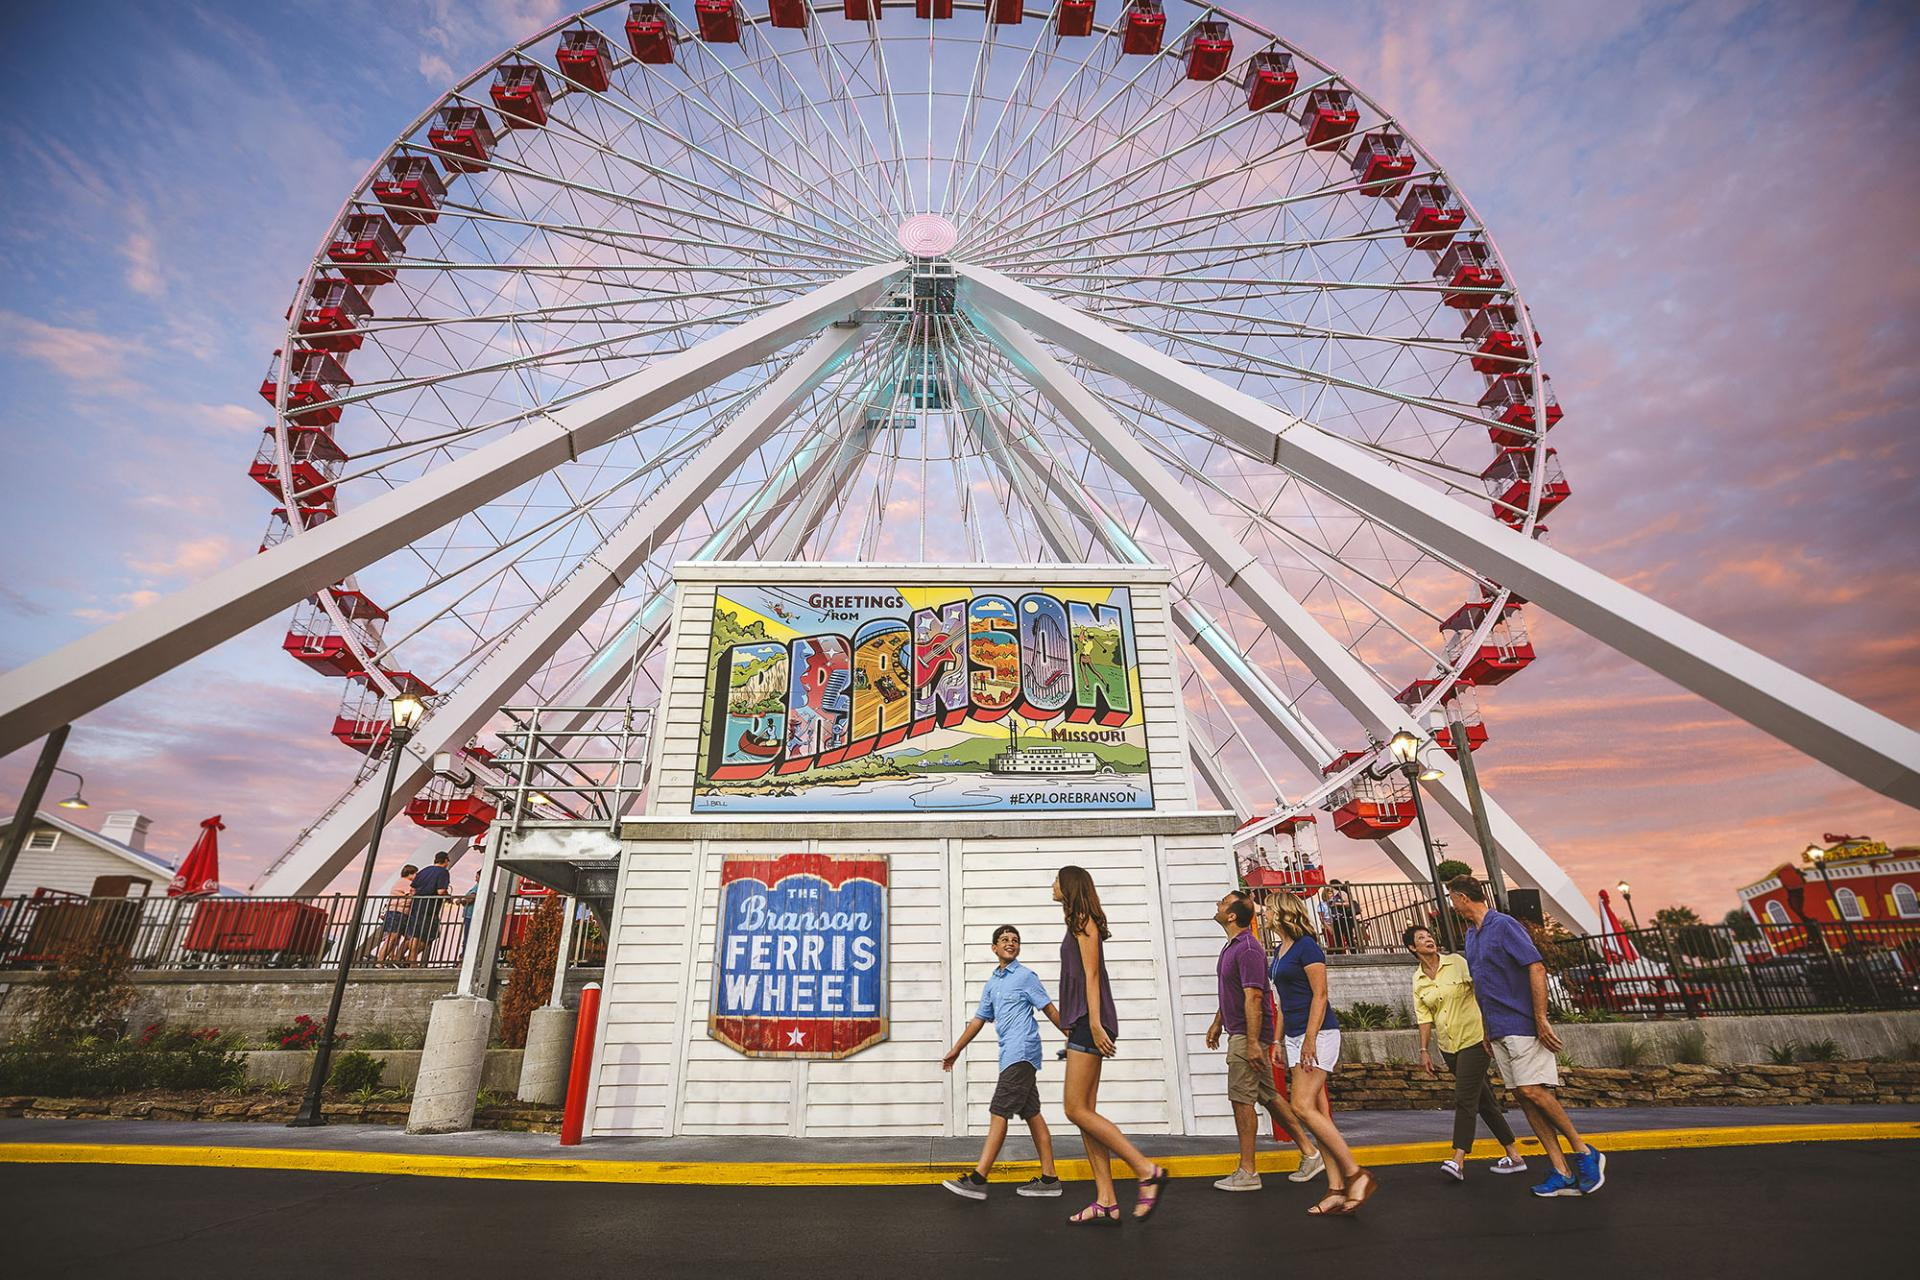 Family walks past a large ferris wheel and Branson mural at dusk.